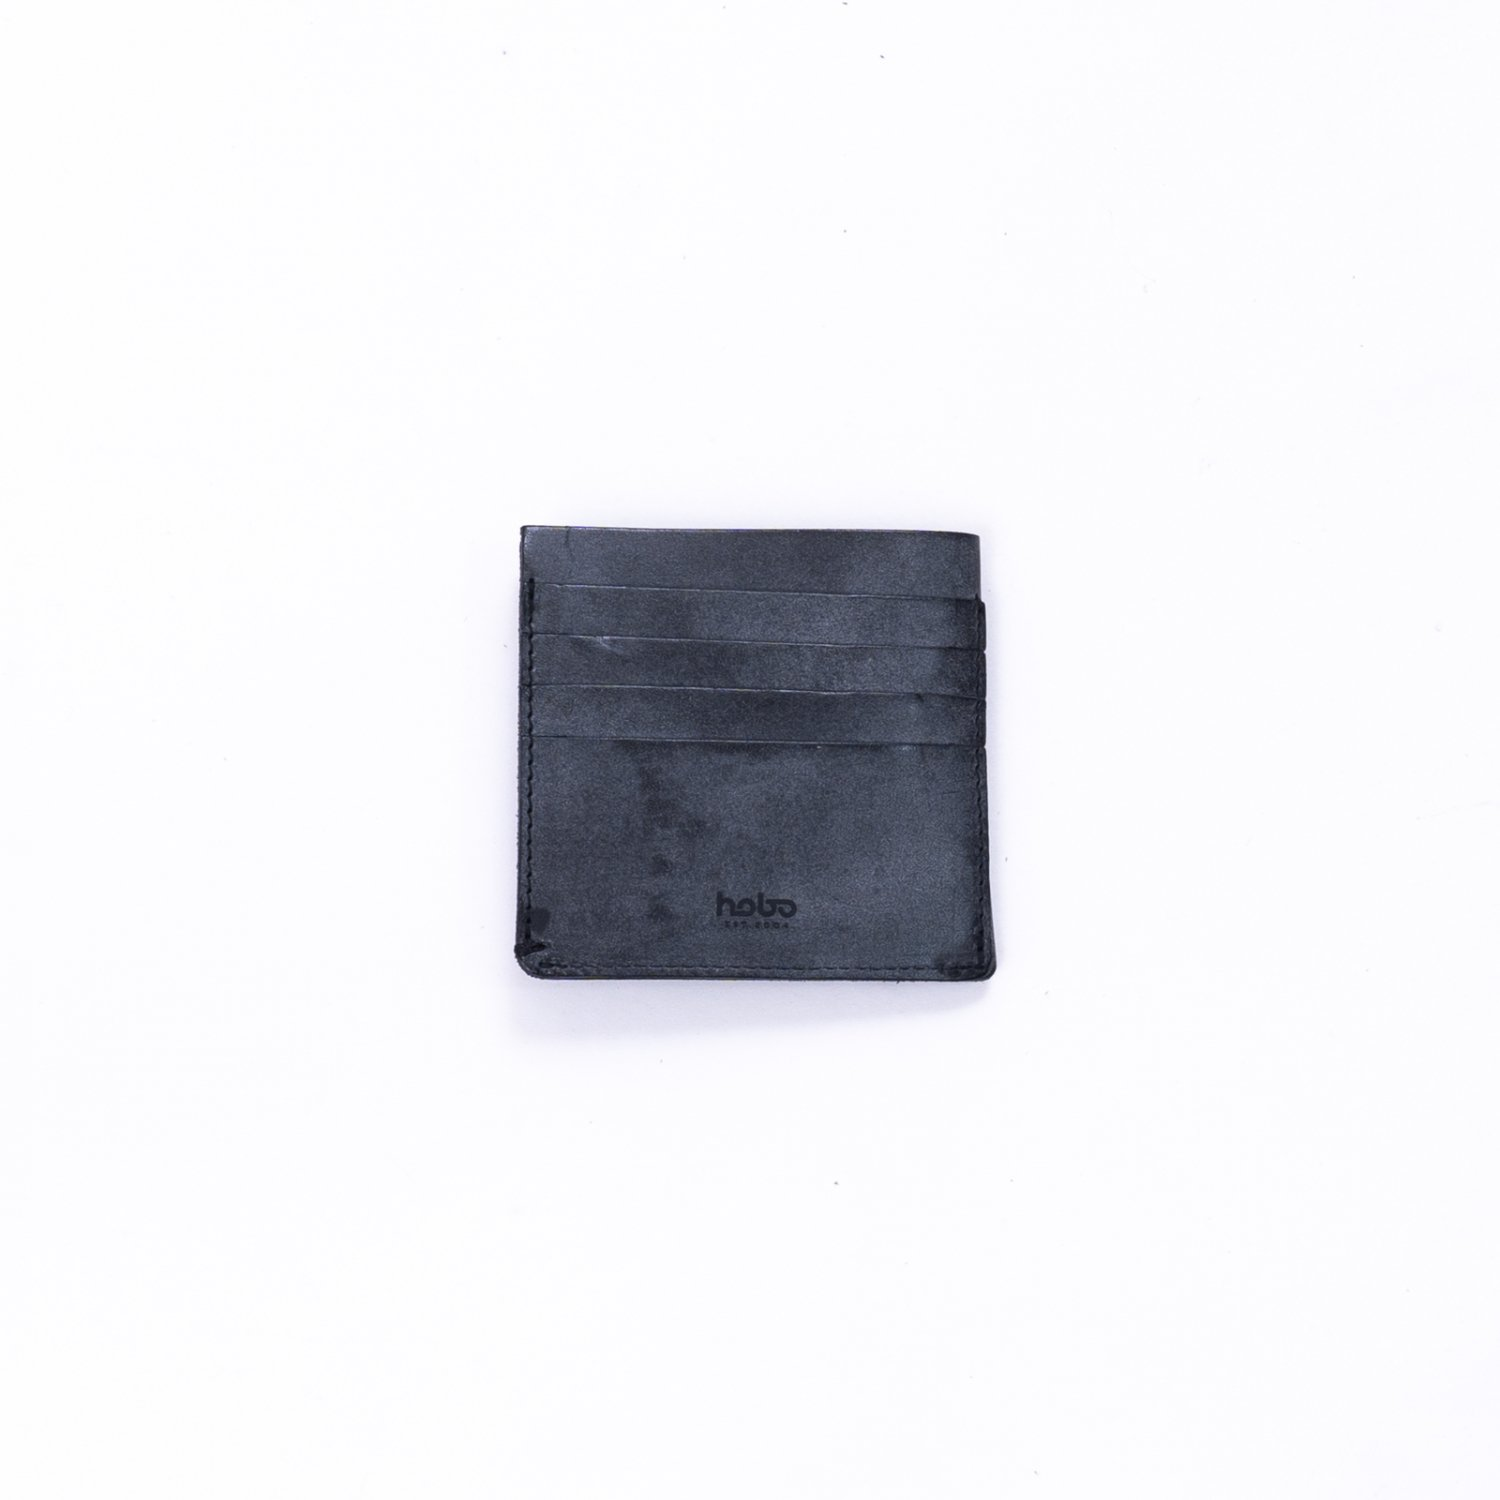 hobo * COMPACT WALLET OILED COW LEATER(2色展開)